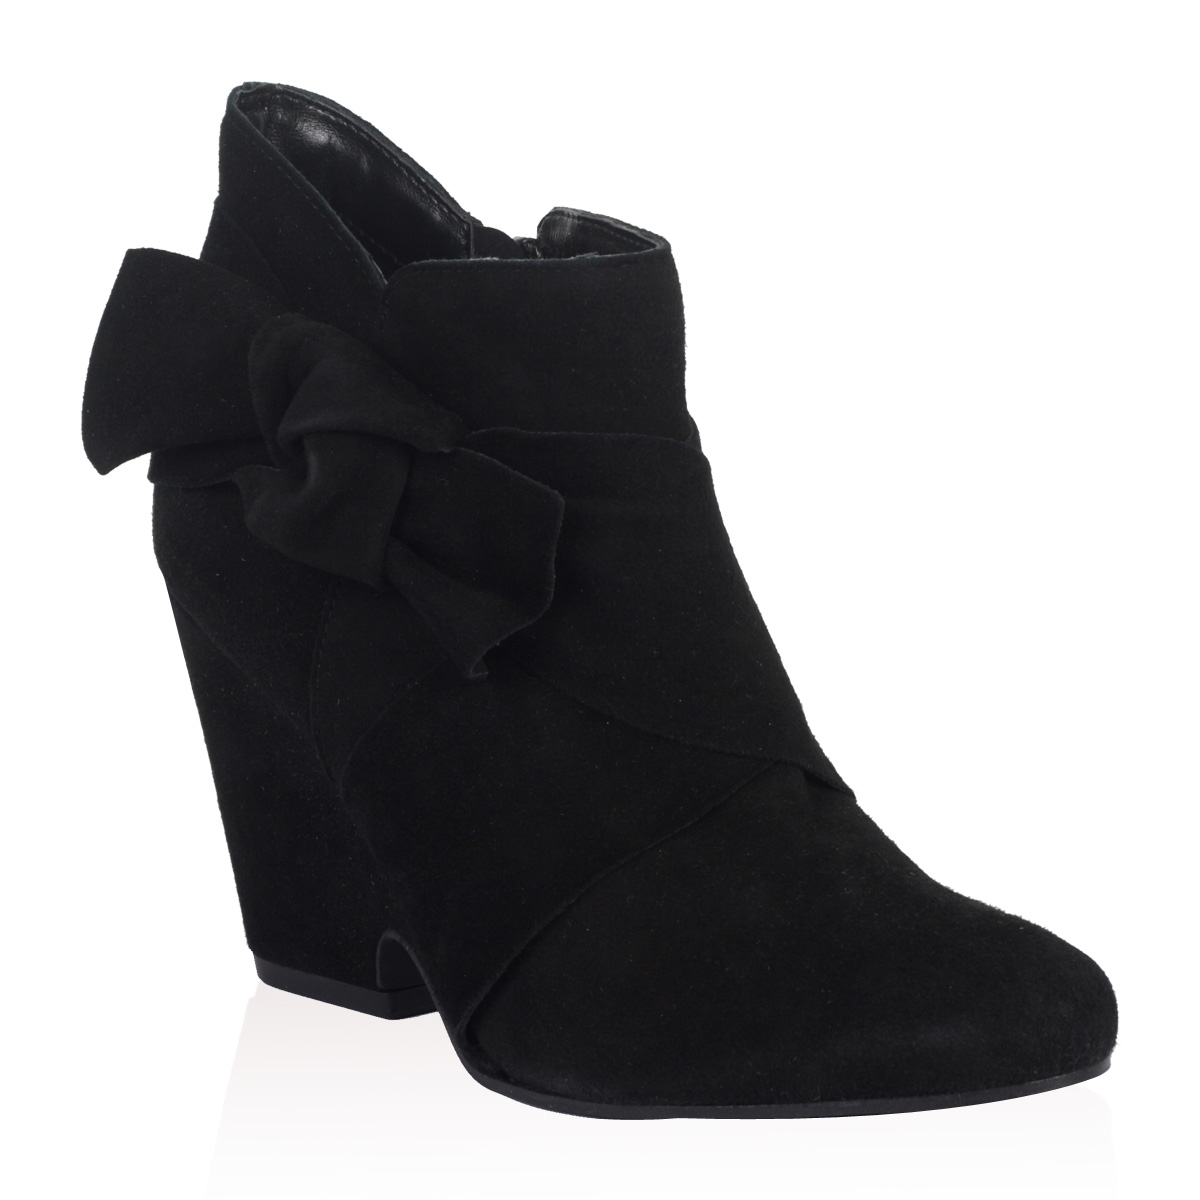 NEW-DUNE-LADIES-KILIMANJA-WOMENS-BLACK-BOW-DEMI-BLOCK-WEDGE-ANKLE-BOOTS-SIZE-3-8